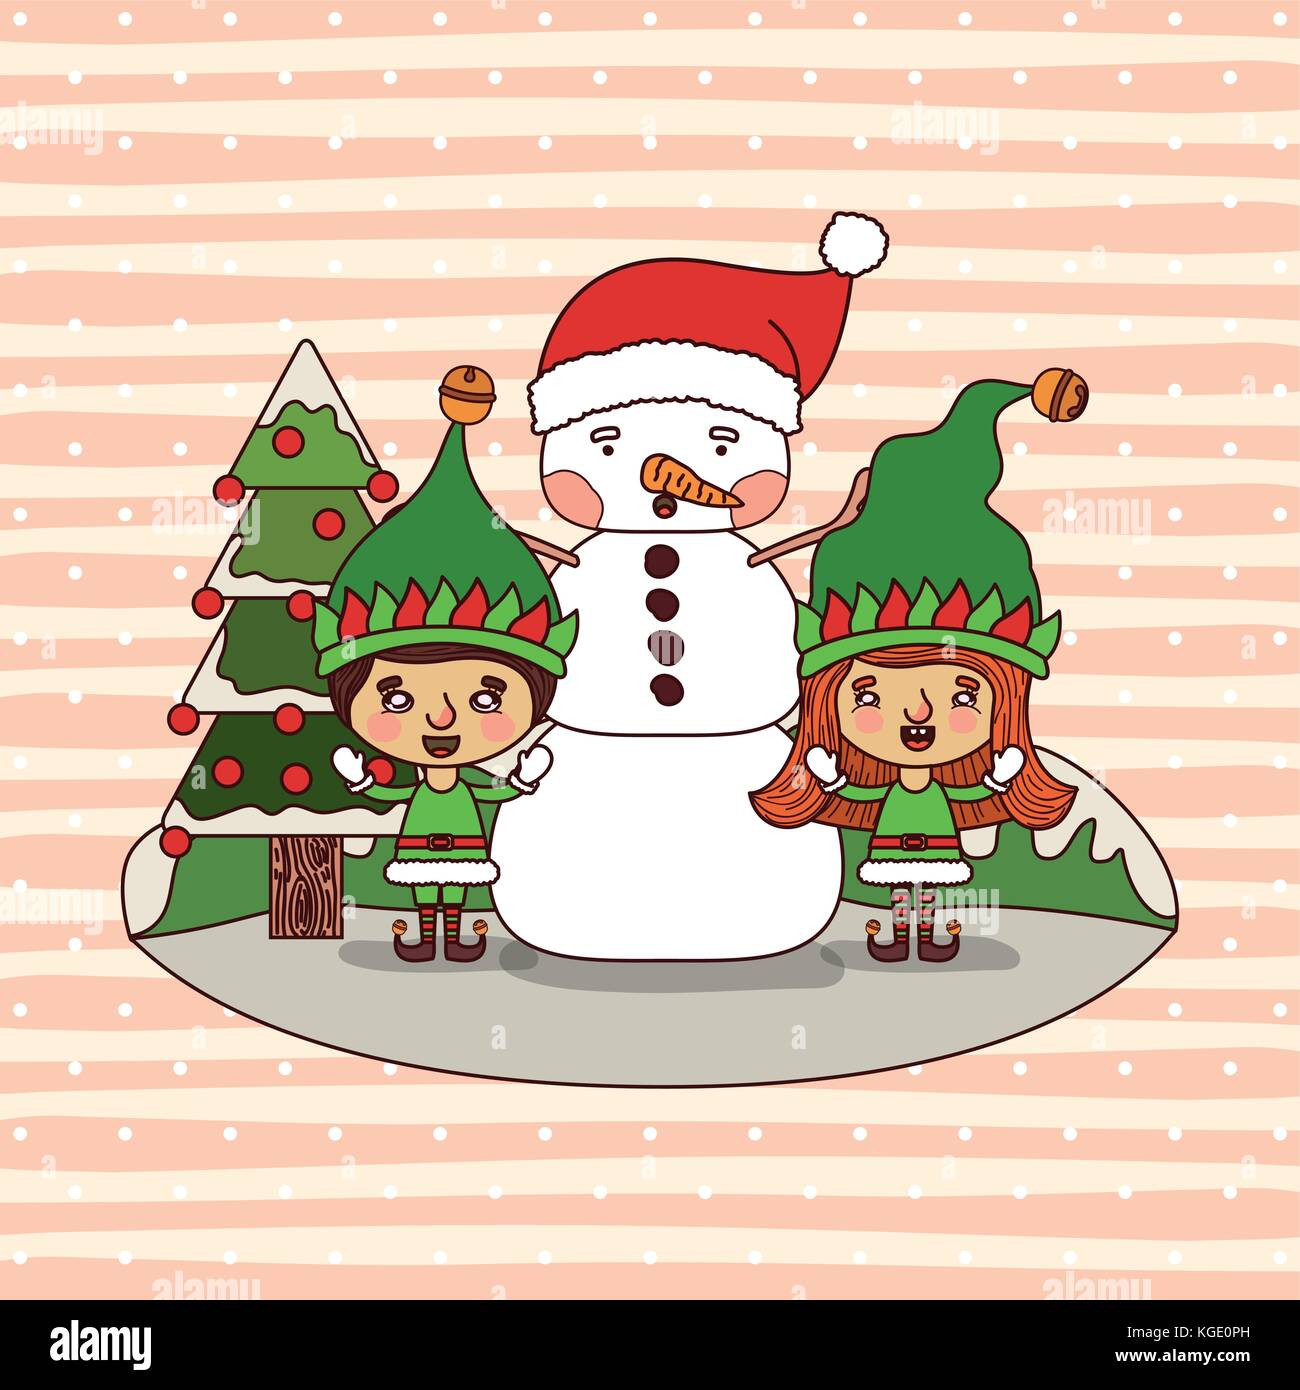 Christmas Card With Christmas Tree And Gnome Kids And Snowman And